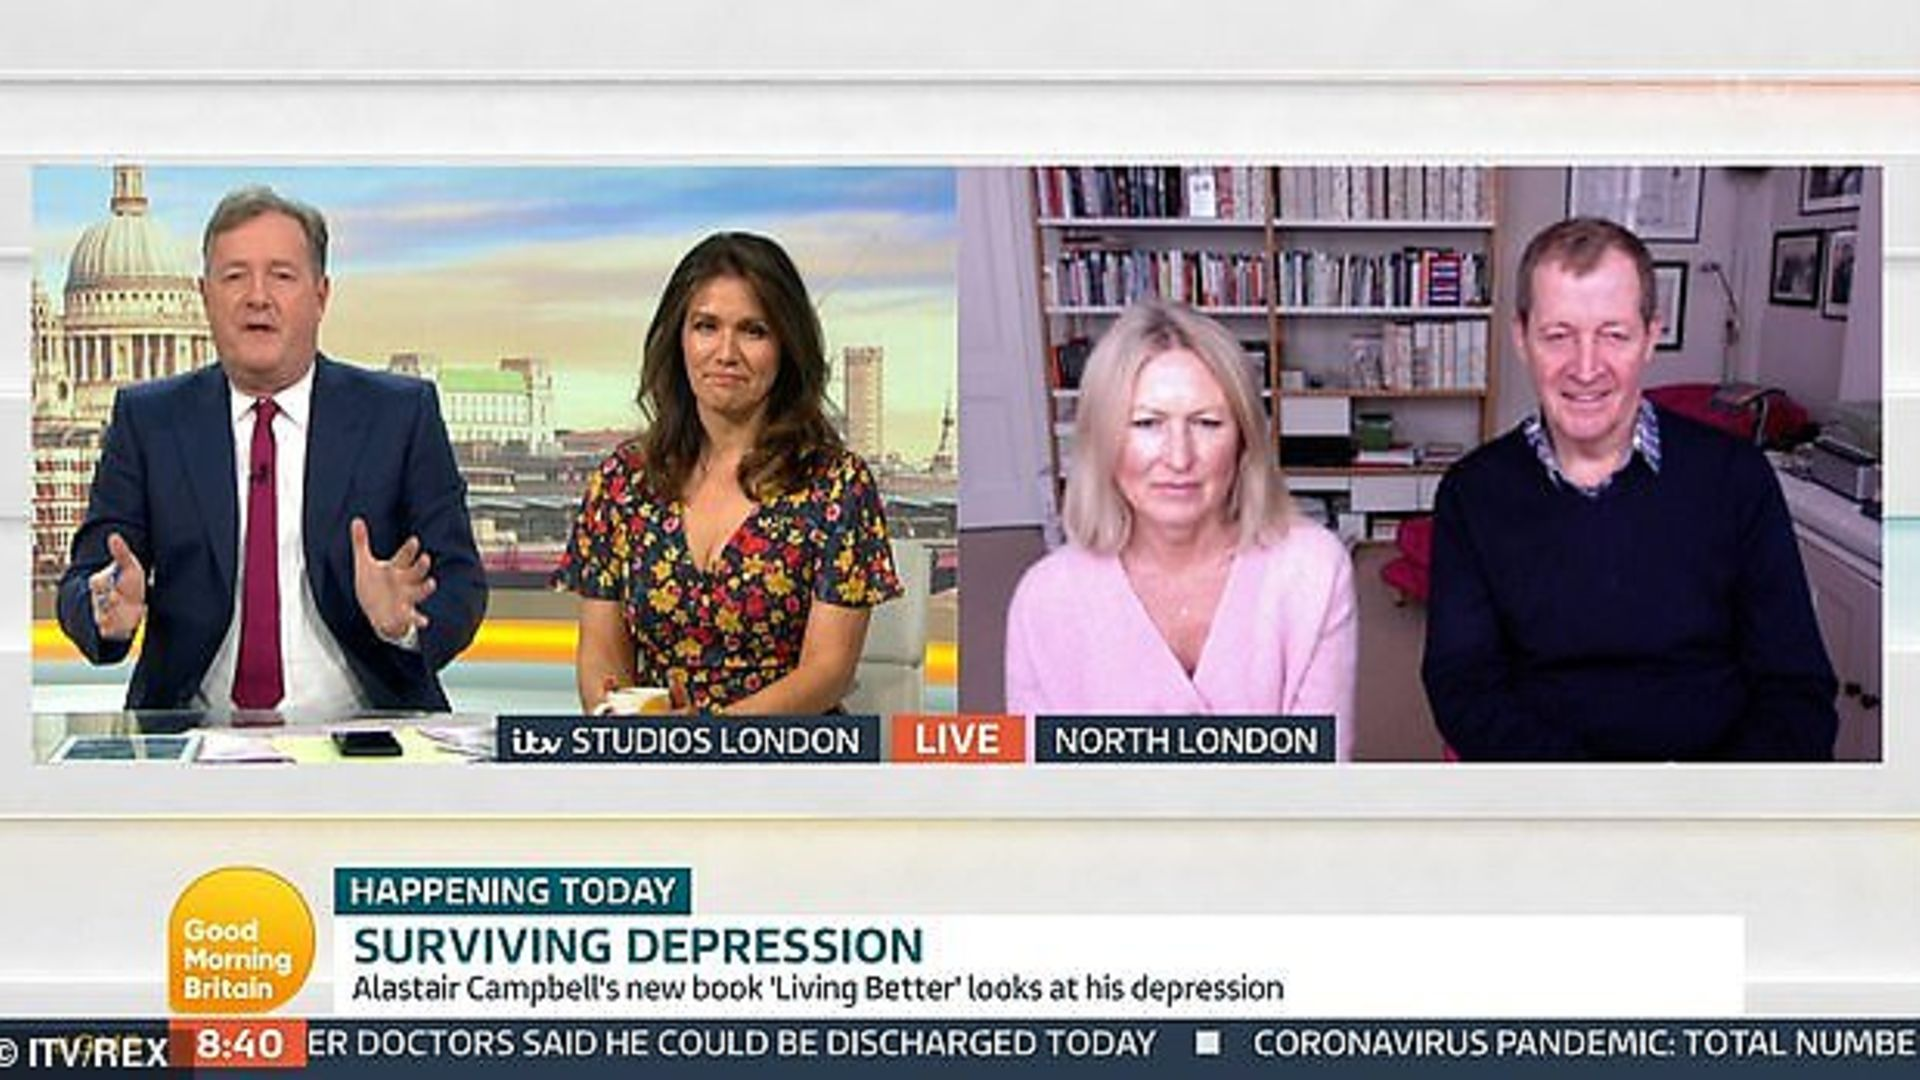 Alastair Campbell and partner Fiona Millar appear on Good Morning Britain, presented by hosts Piers Morgan and Susanna Reid. - Credit: Archant